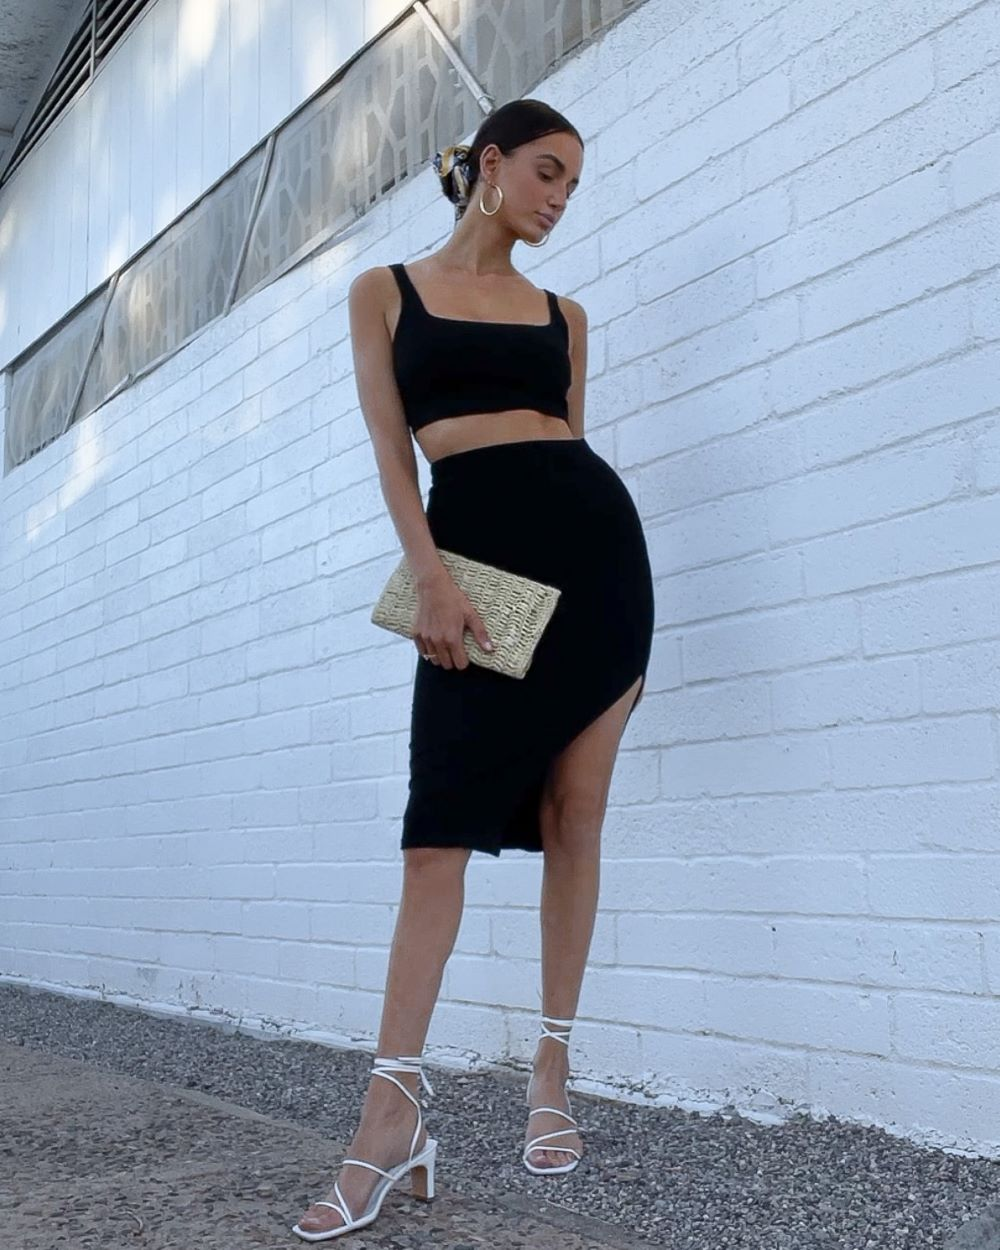 a woman wearing cute beach vacation outfit of black two piece dress with lace up white heels and a straw clutch